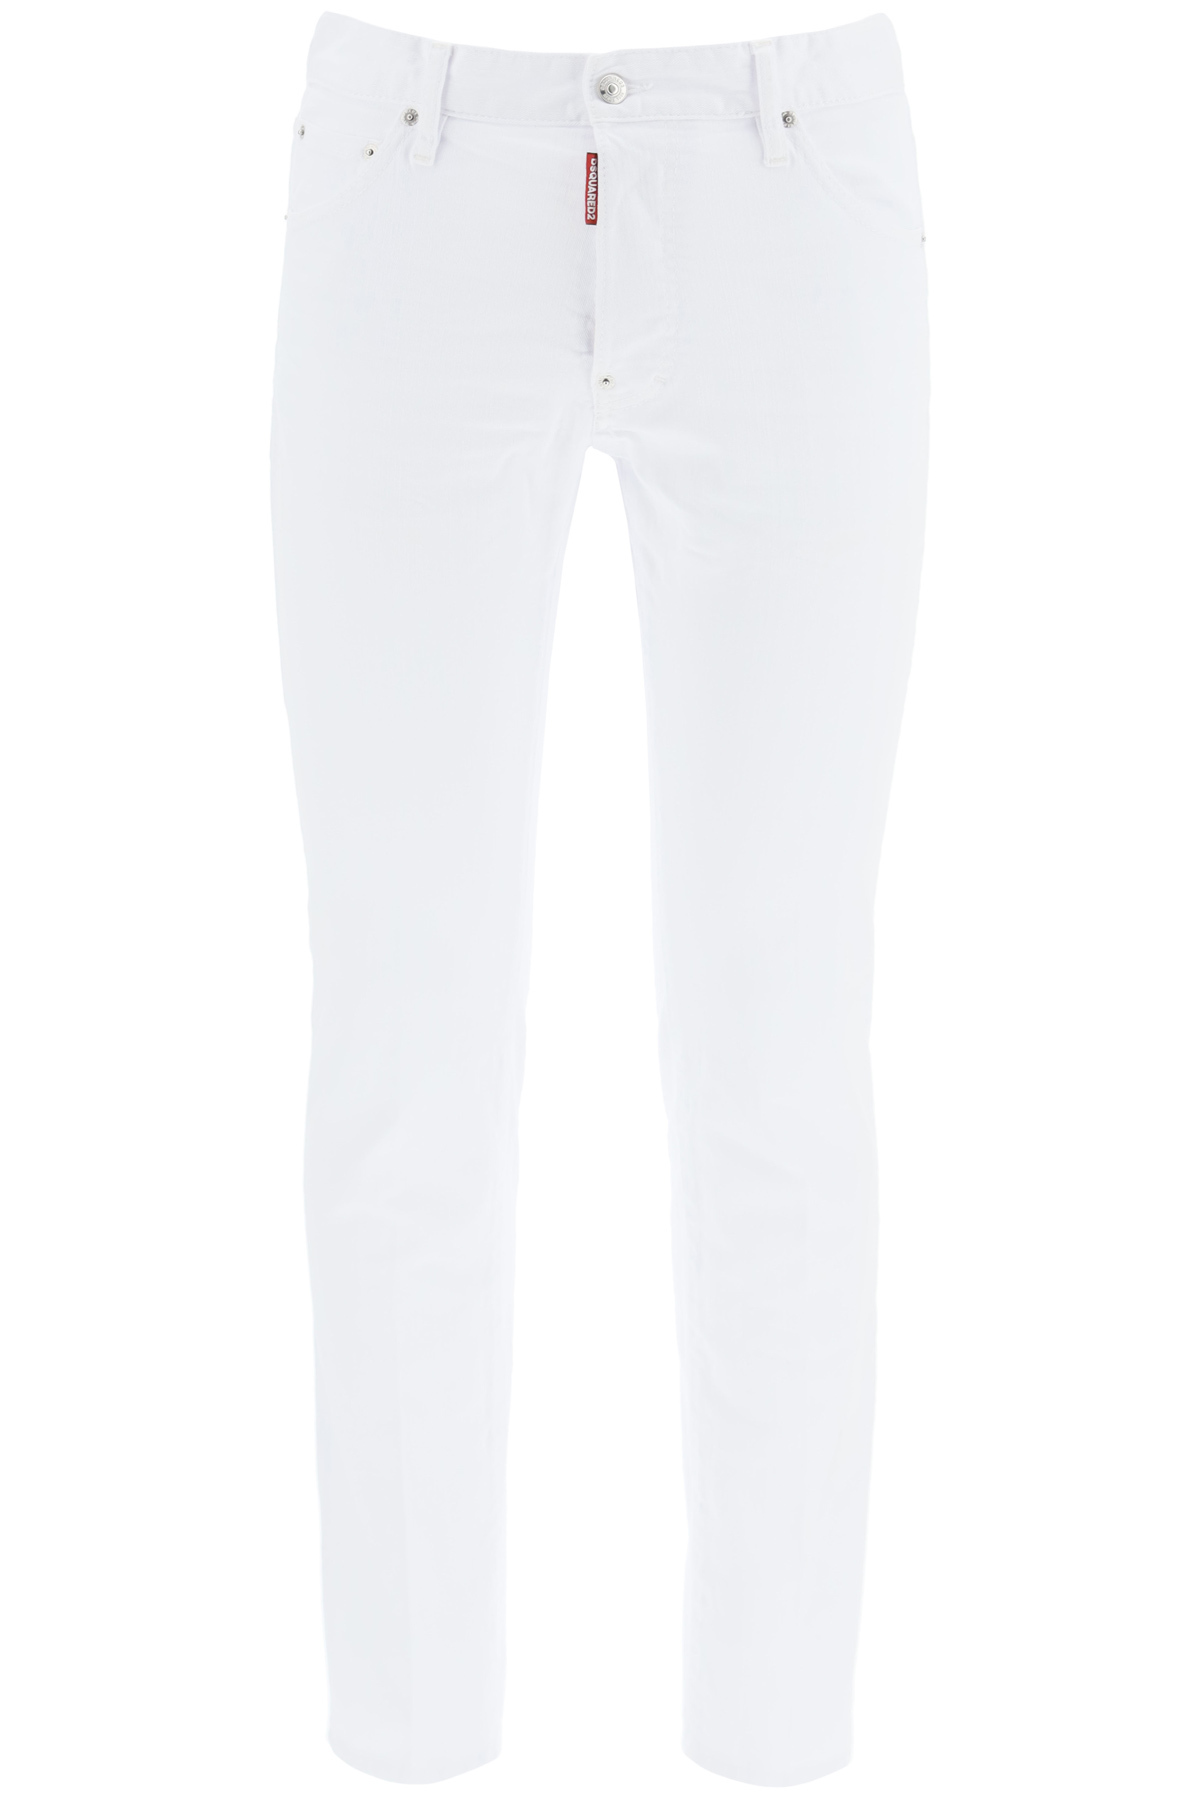 Dsquared2 jeans cool guy white bull